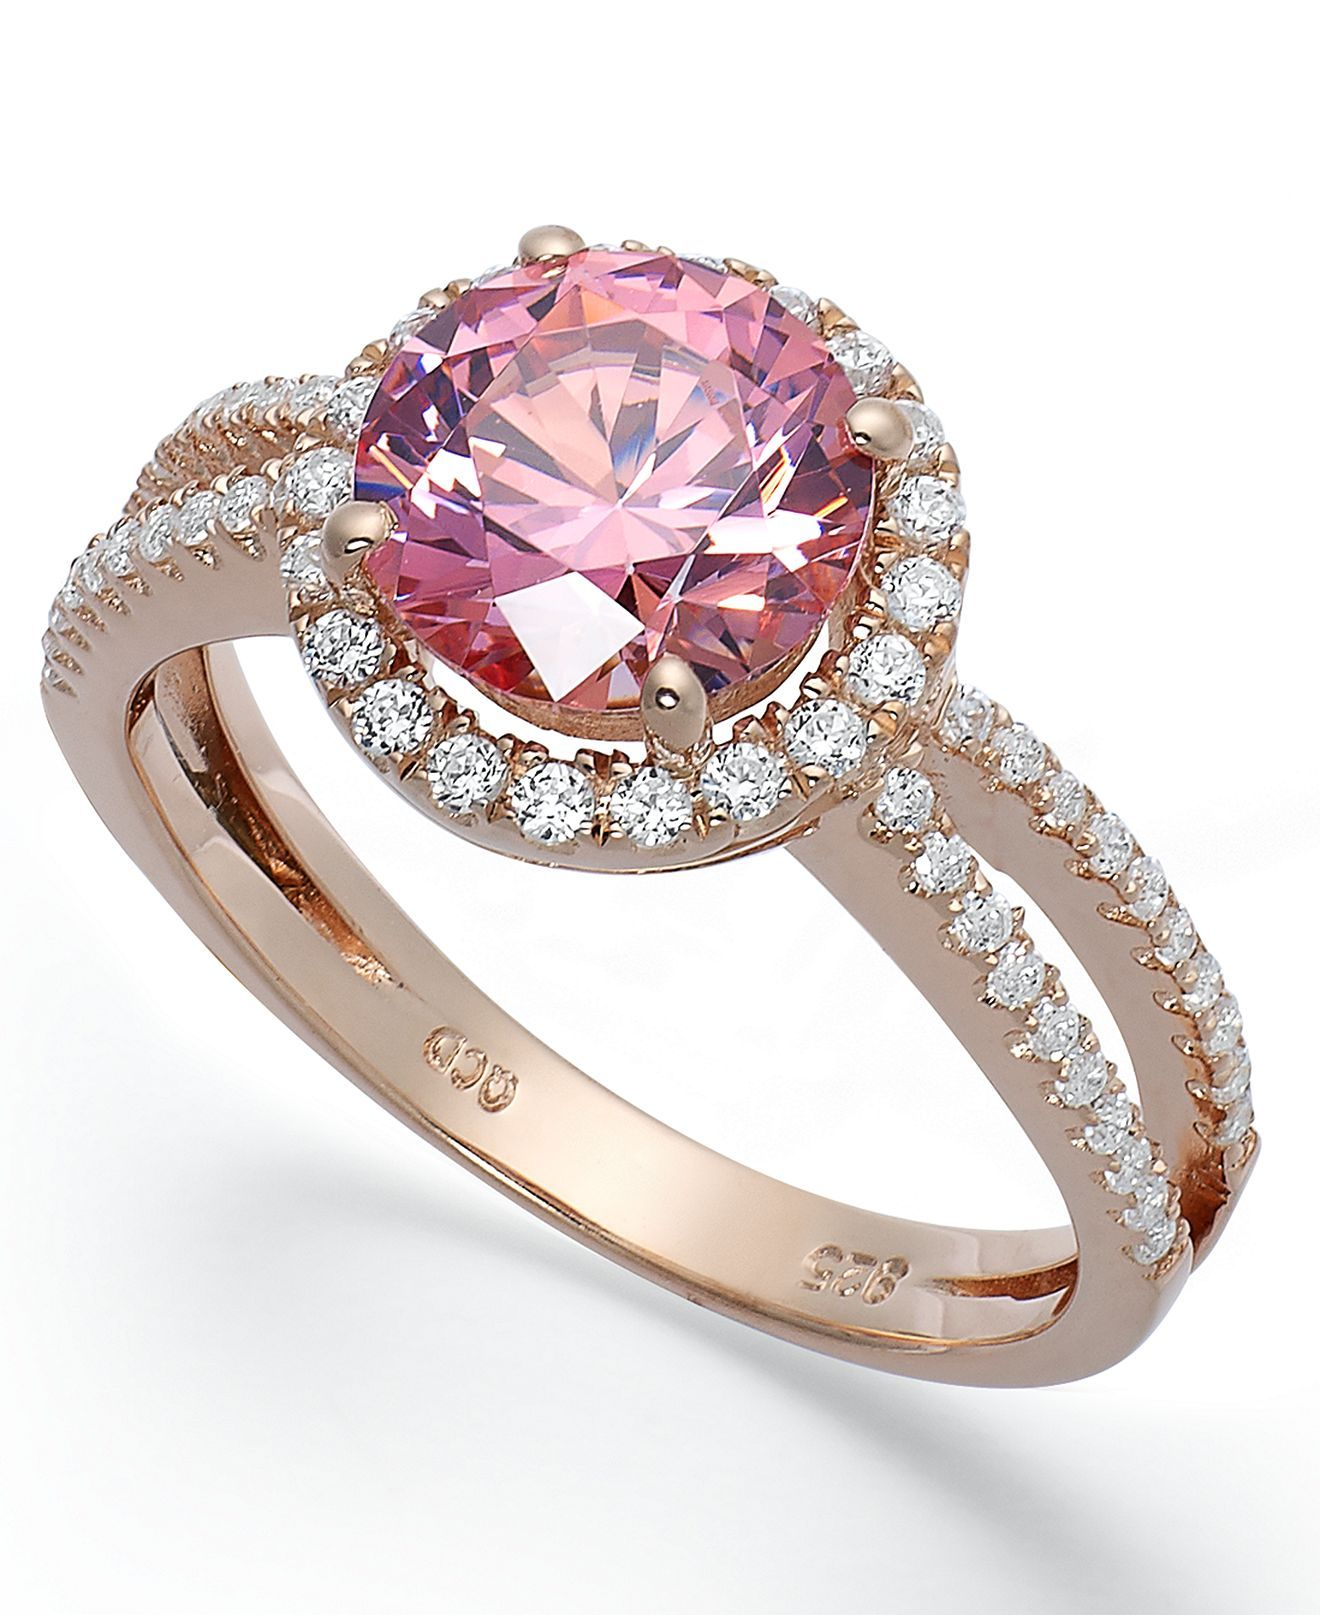 14k Rose Gold Over Sterling Silver Ring Pink Cubic Zirconia wth